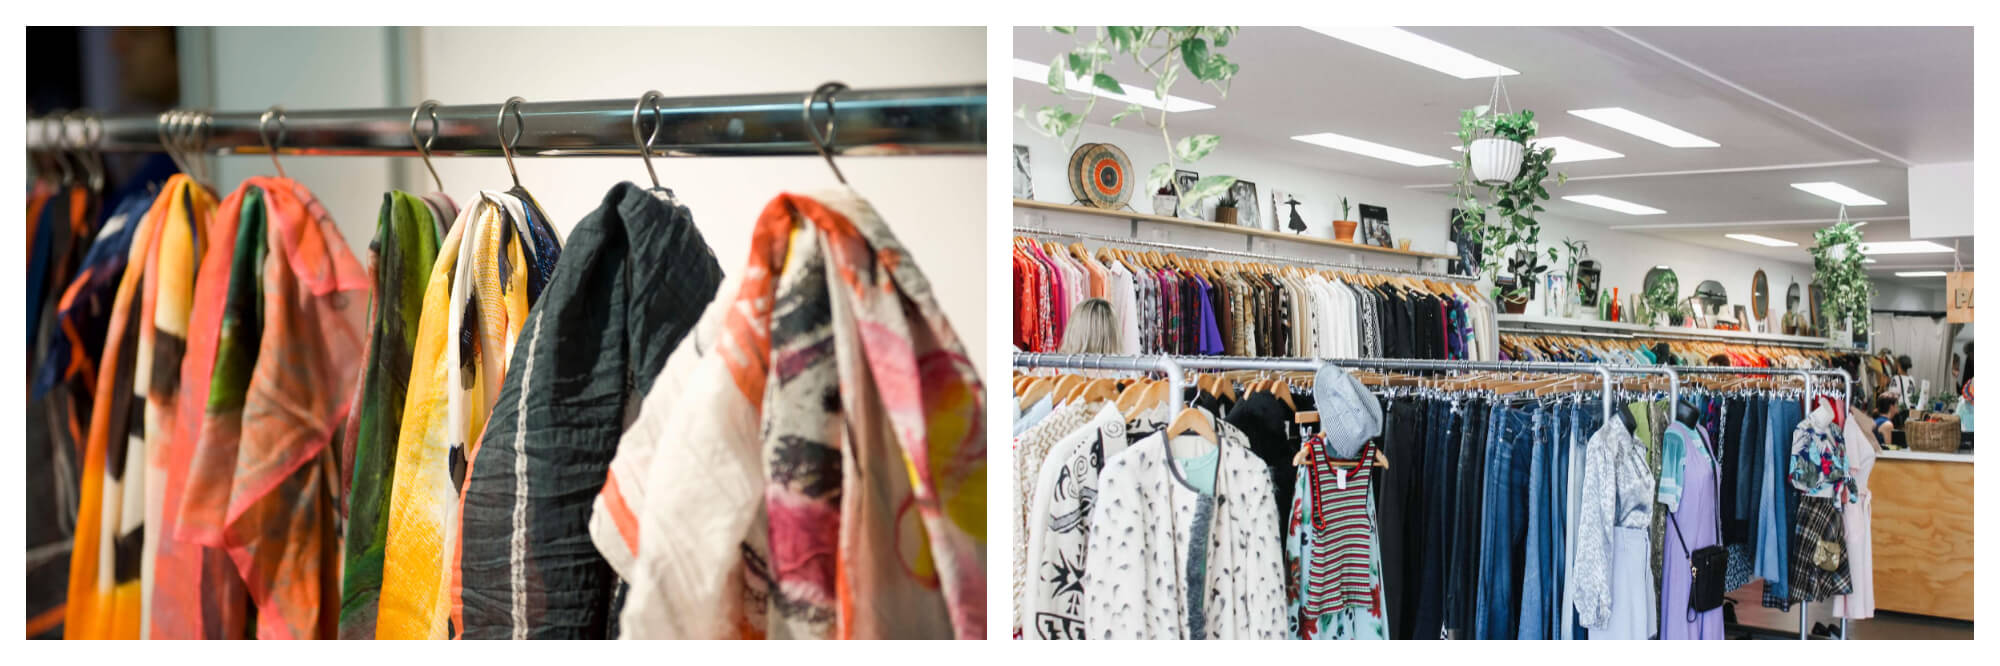 Left: A row of colourful scarves. Right: Interior of a clothing store